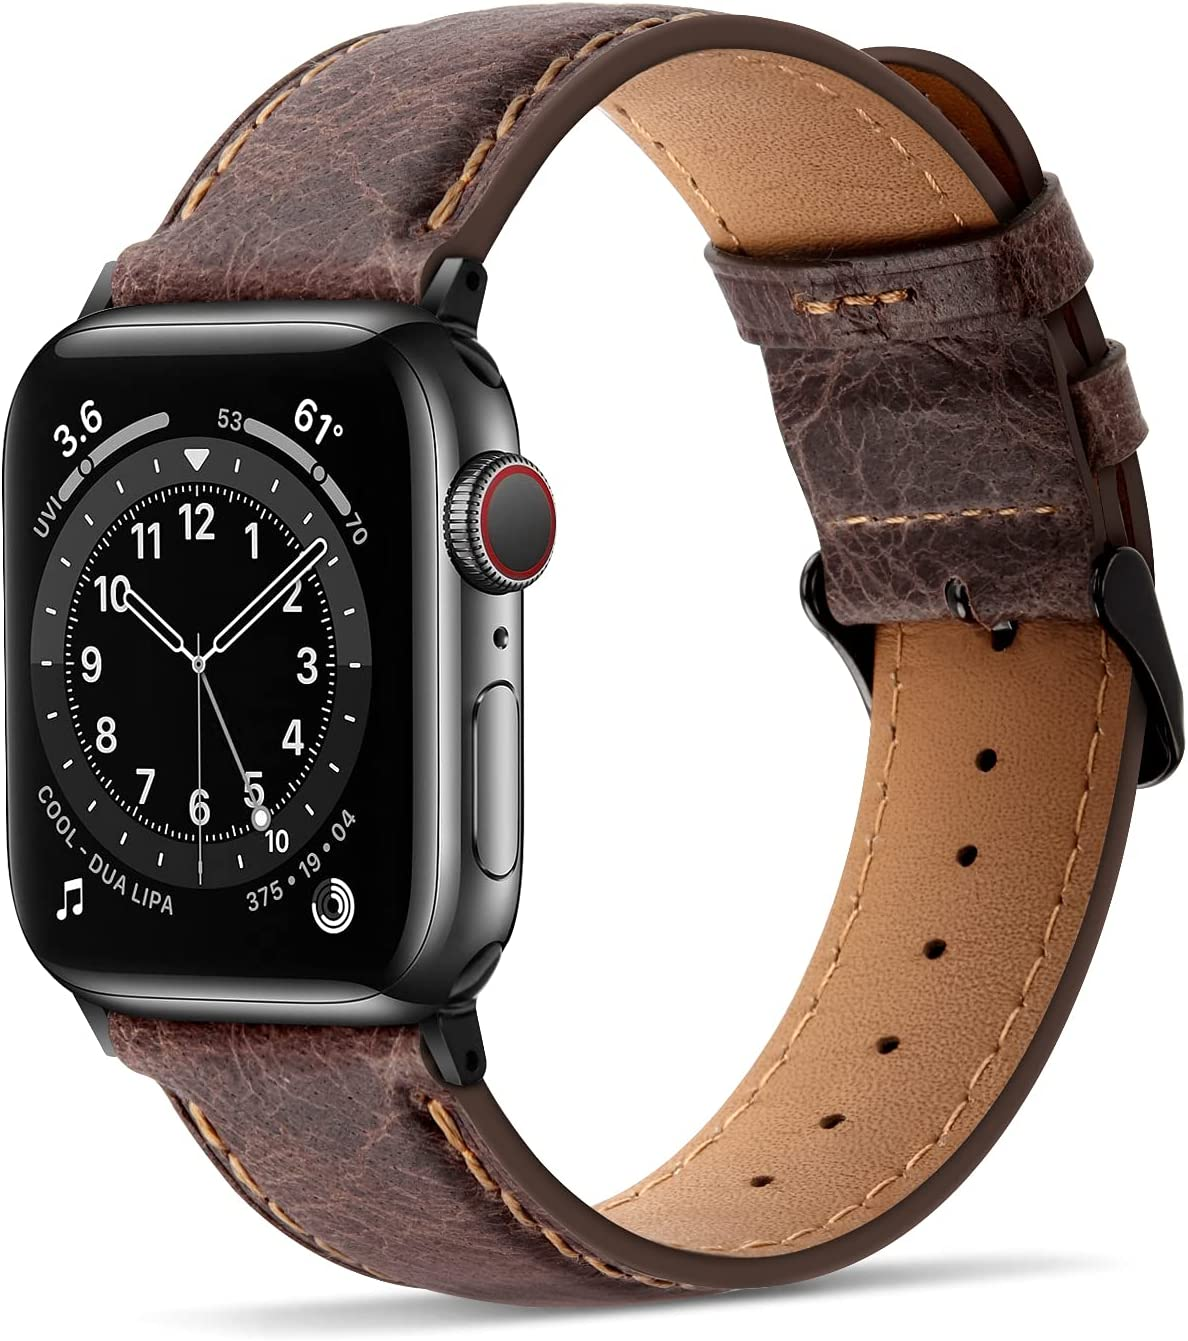 Tasikar Bands Compatible with Apple Watch Band 38mm 40mm Premium Genuine Leather Replacement Band Compatible with Apple Watch SE Series 6 5 4 (40mm) Series 3 2 1 (38mm) - Dark Brown